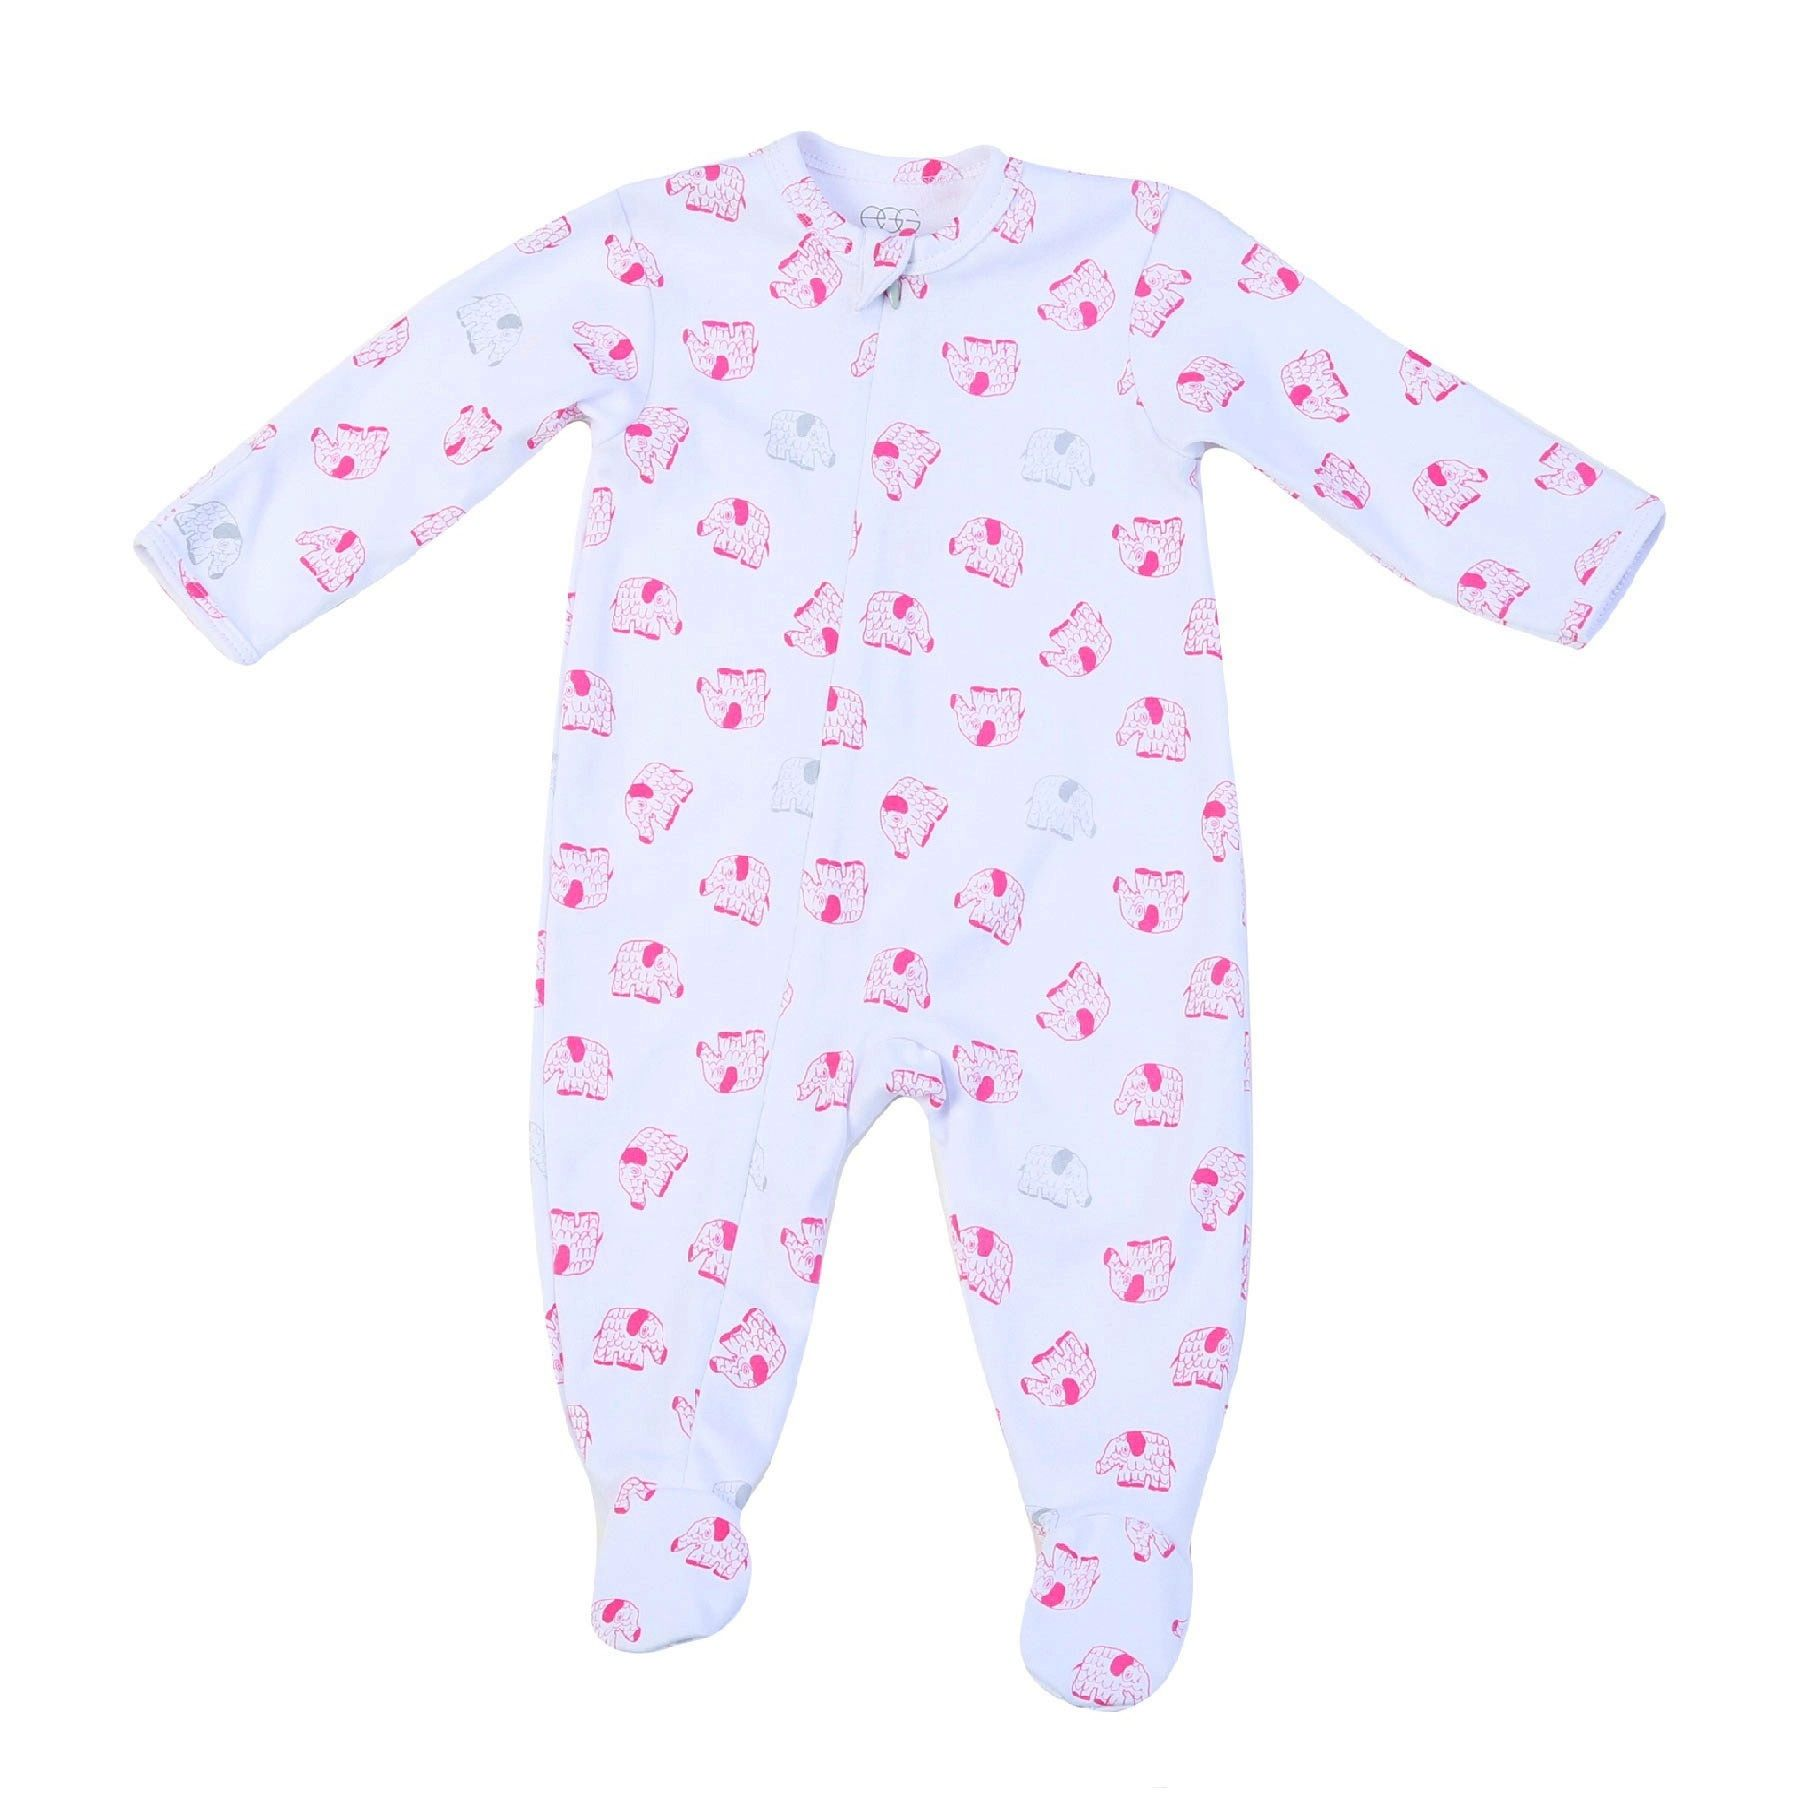 8093364ea14 The foundation of our layette collection is the cotton jersey ...